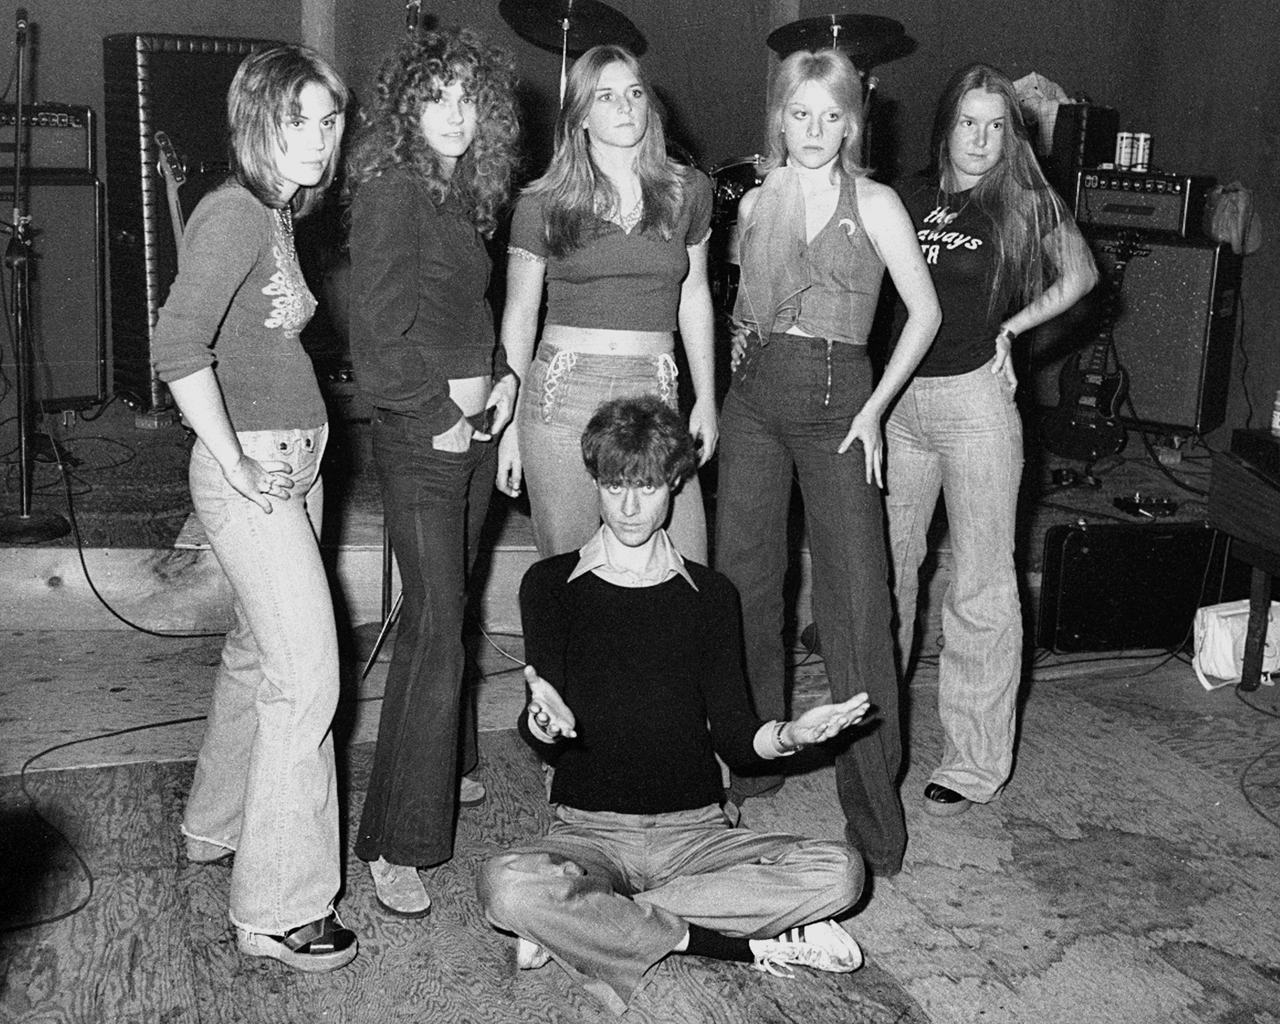 Cherie Currie - November 1975 - The Runaways with Kim Fowley in Los Angeles